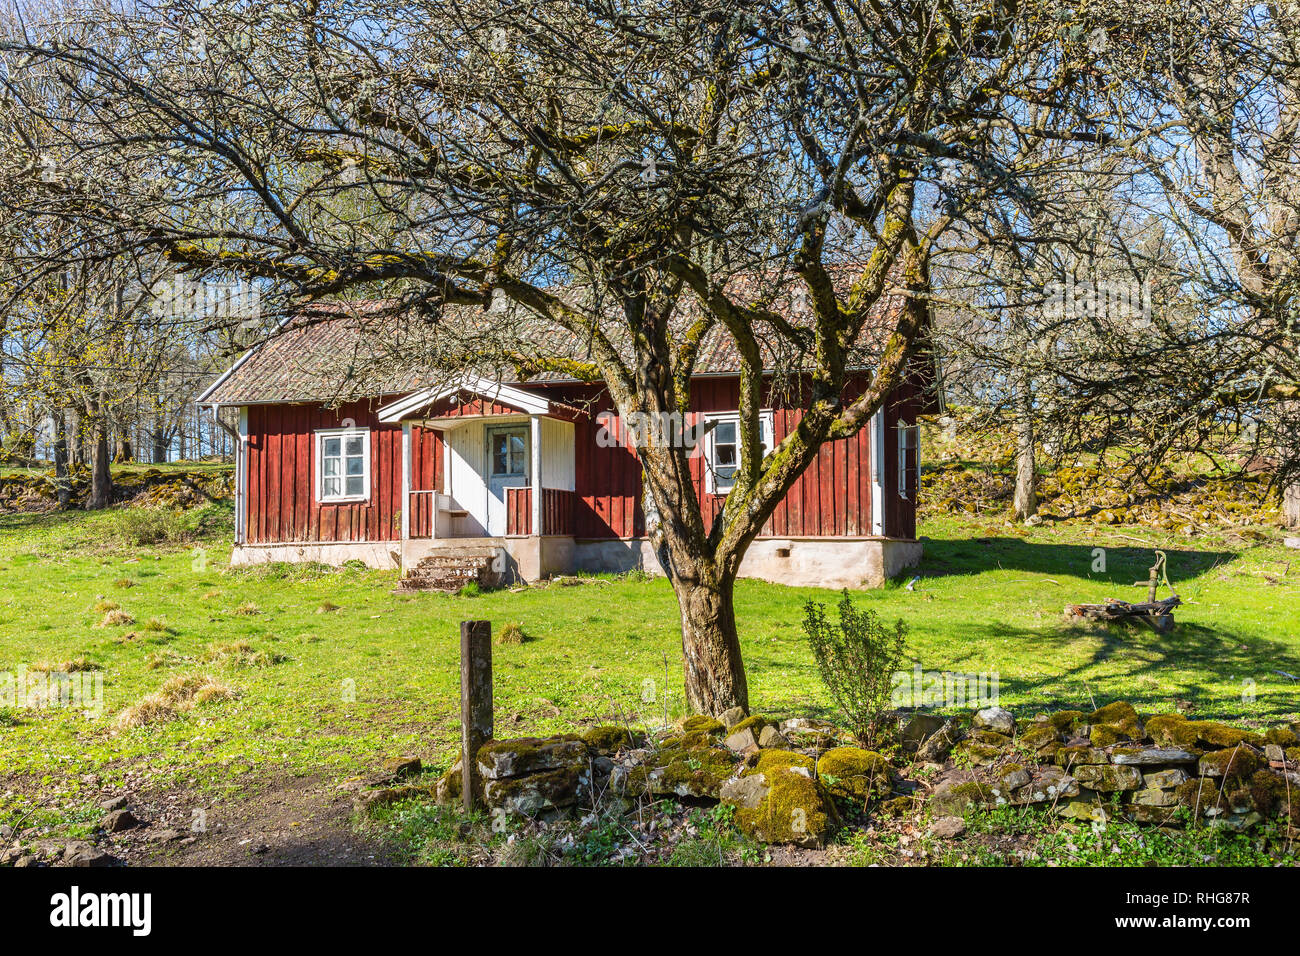 Old abandoned red cottage with garden in spring - Stock Image